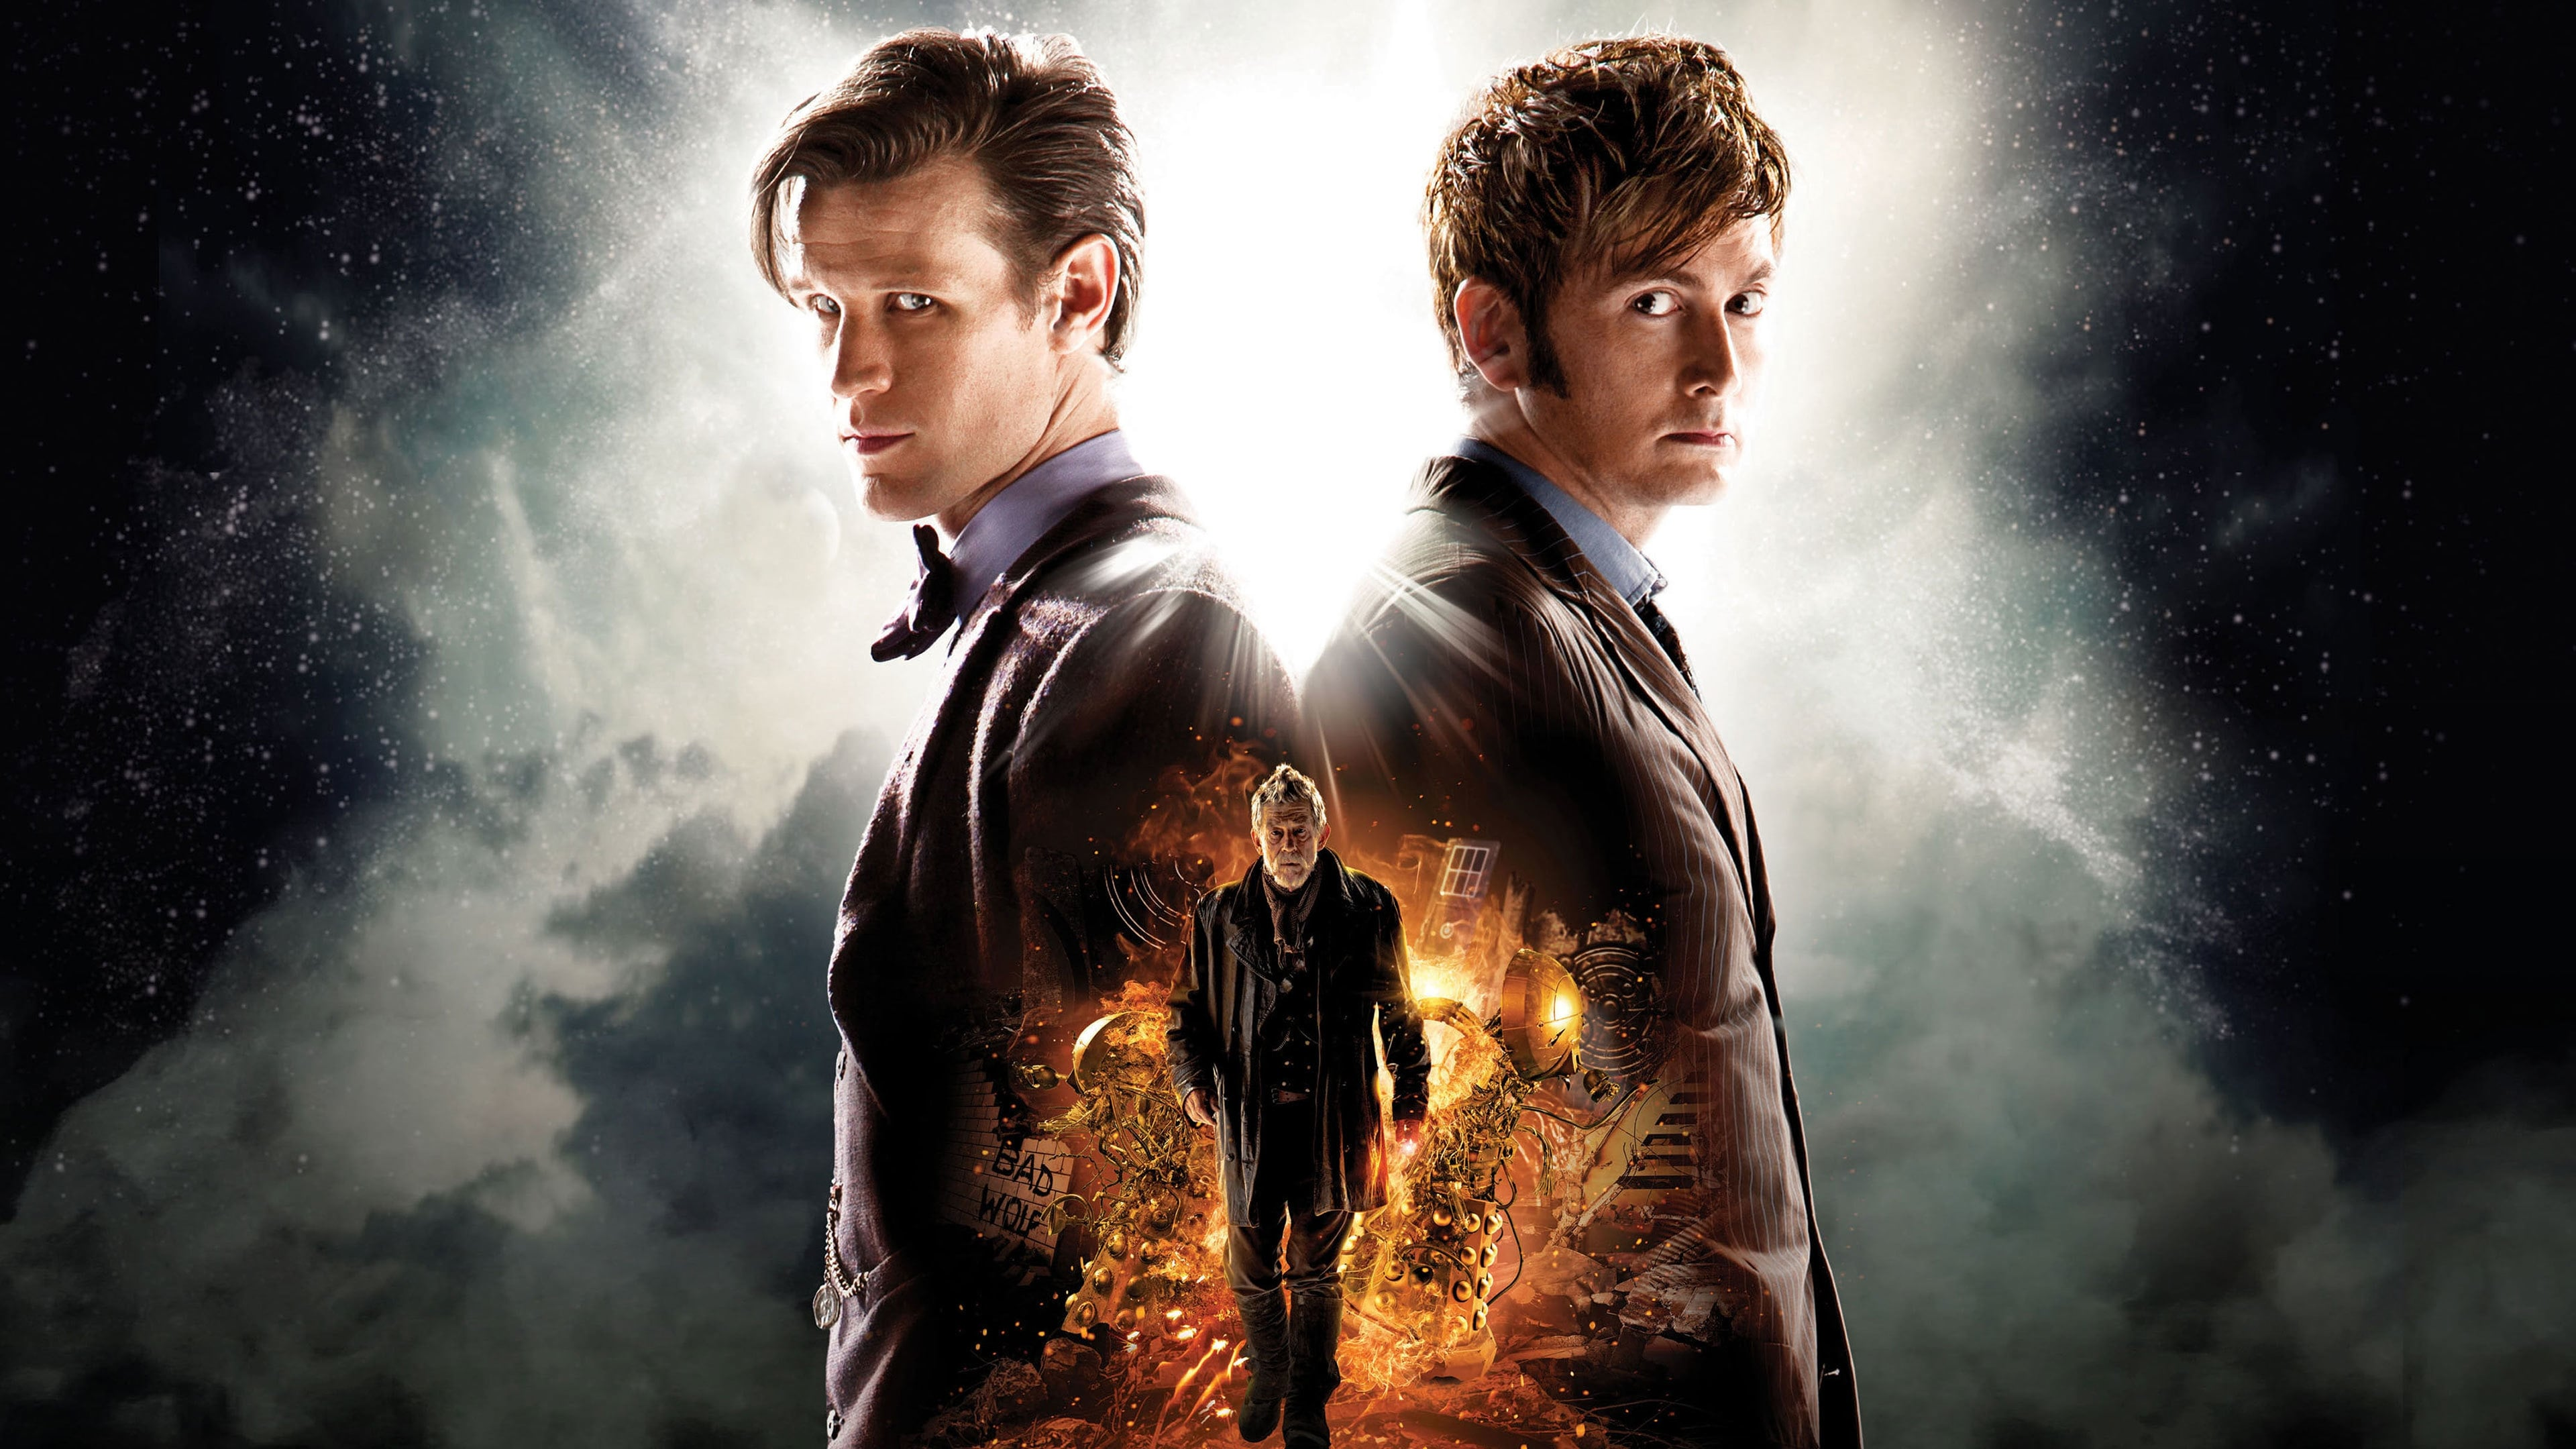 Doctor Who - Season 0 Episode 83 : The Day of the Doctor